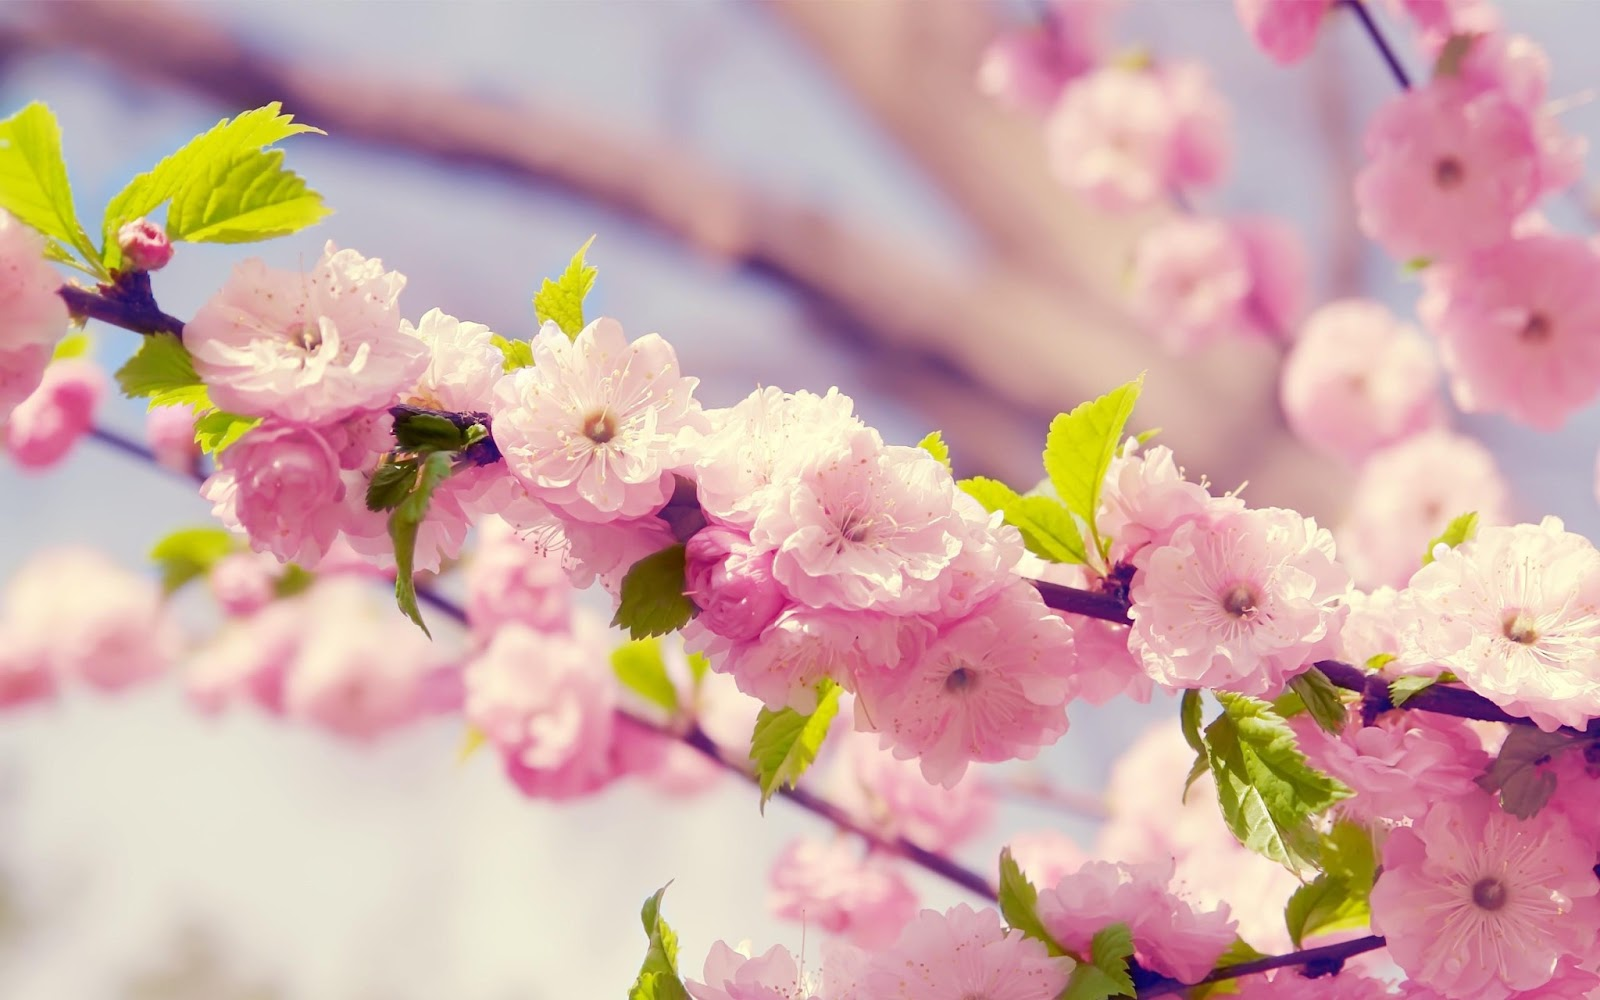 Hd wallpaper cute - Pink Cute Flowers Desktop Hd Wallpapers Jpg